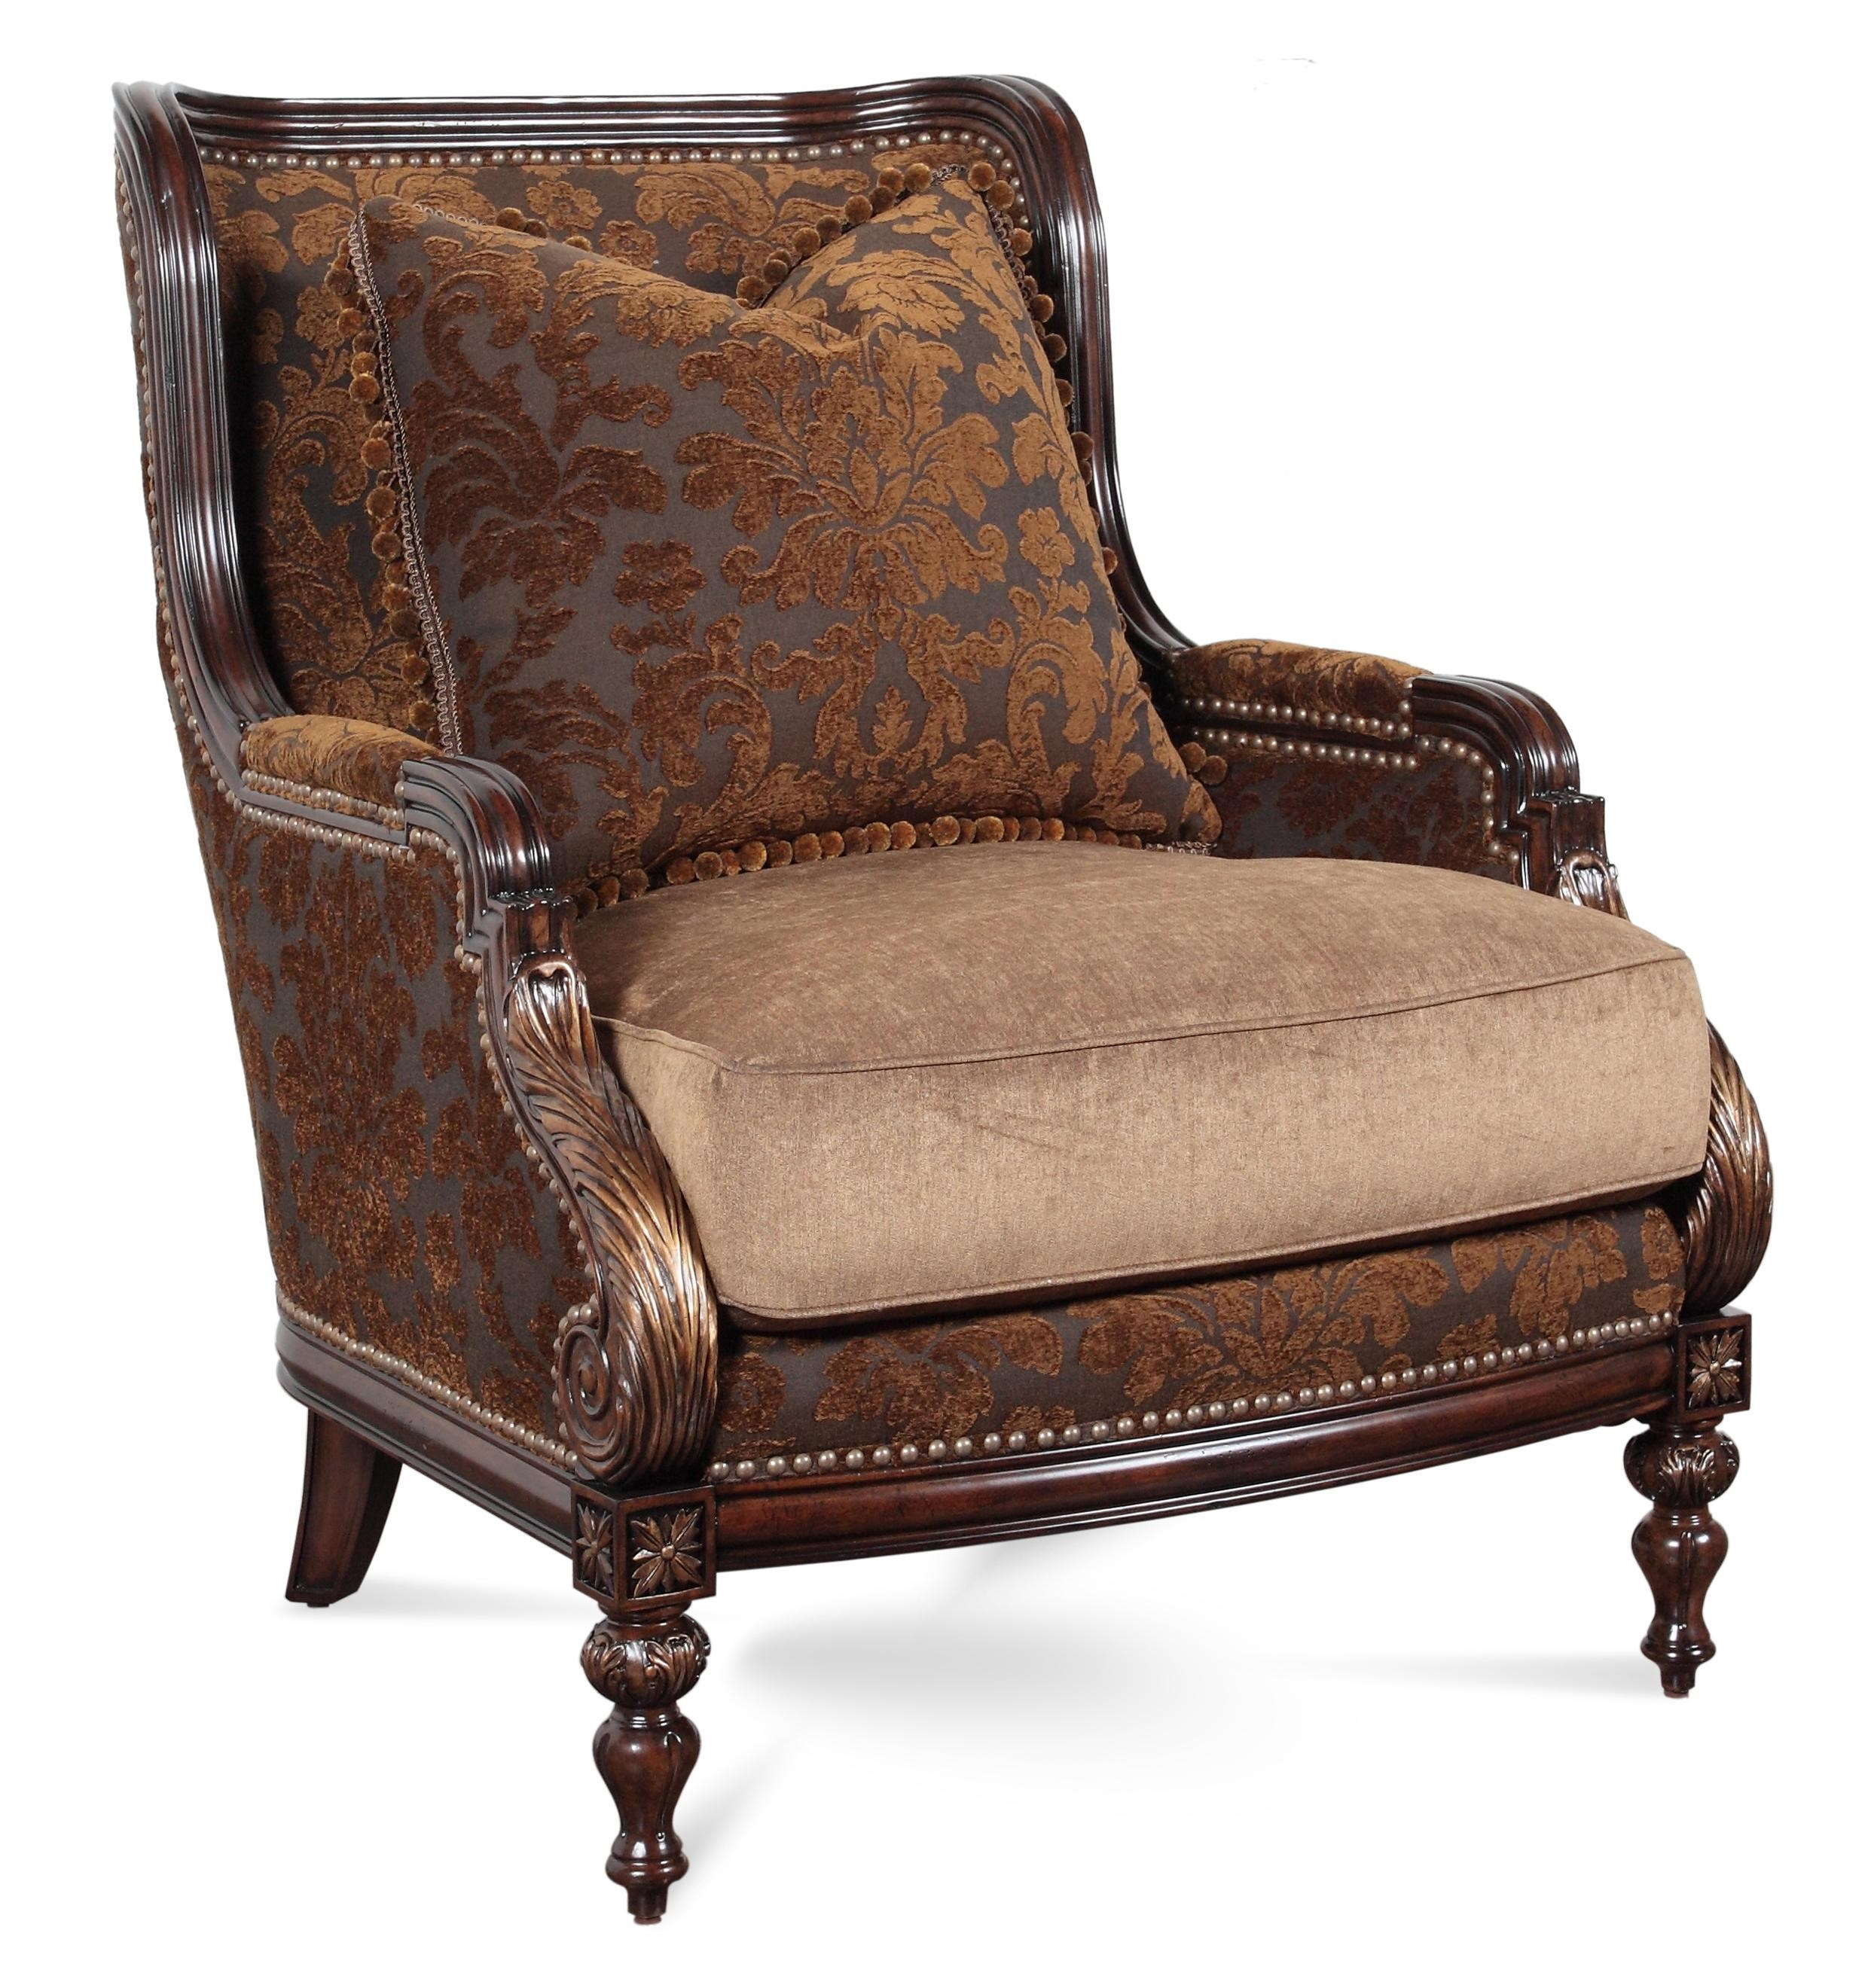 Kiana Traditional Exposed Wood Chair With Nailheads By Rachlin Classics